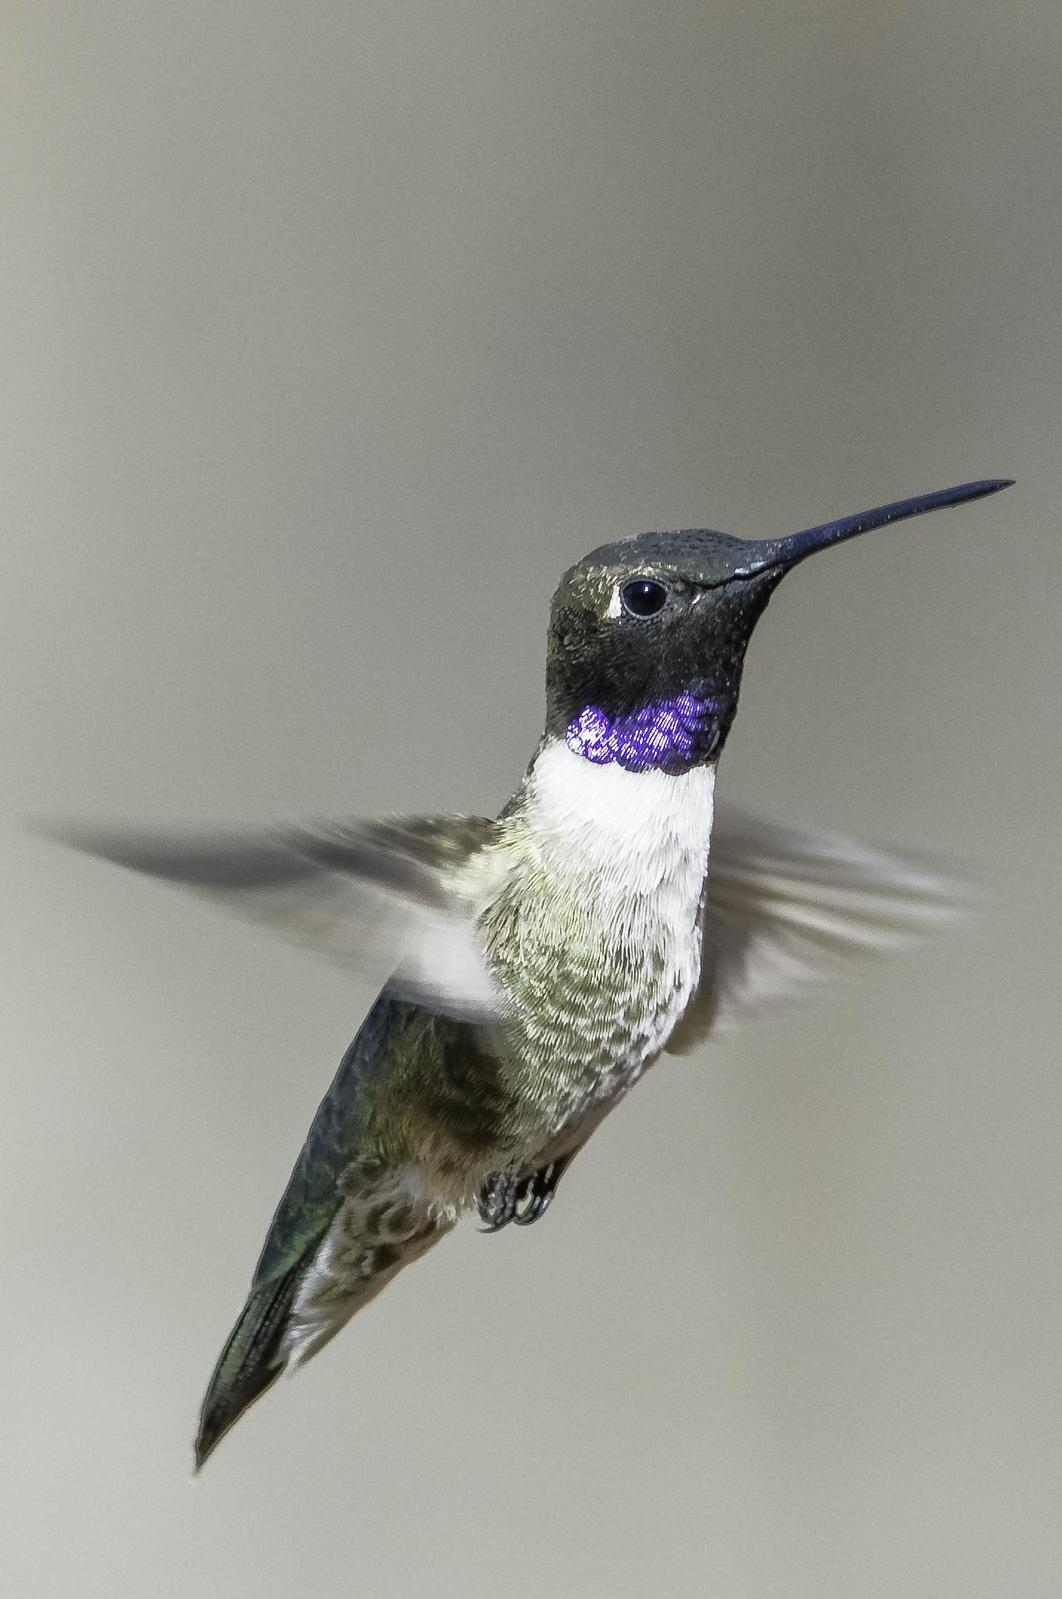 Black-chinned Hummingbird Photo by Mason Rose